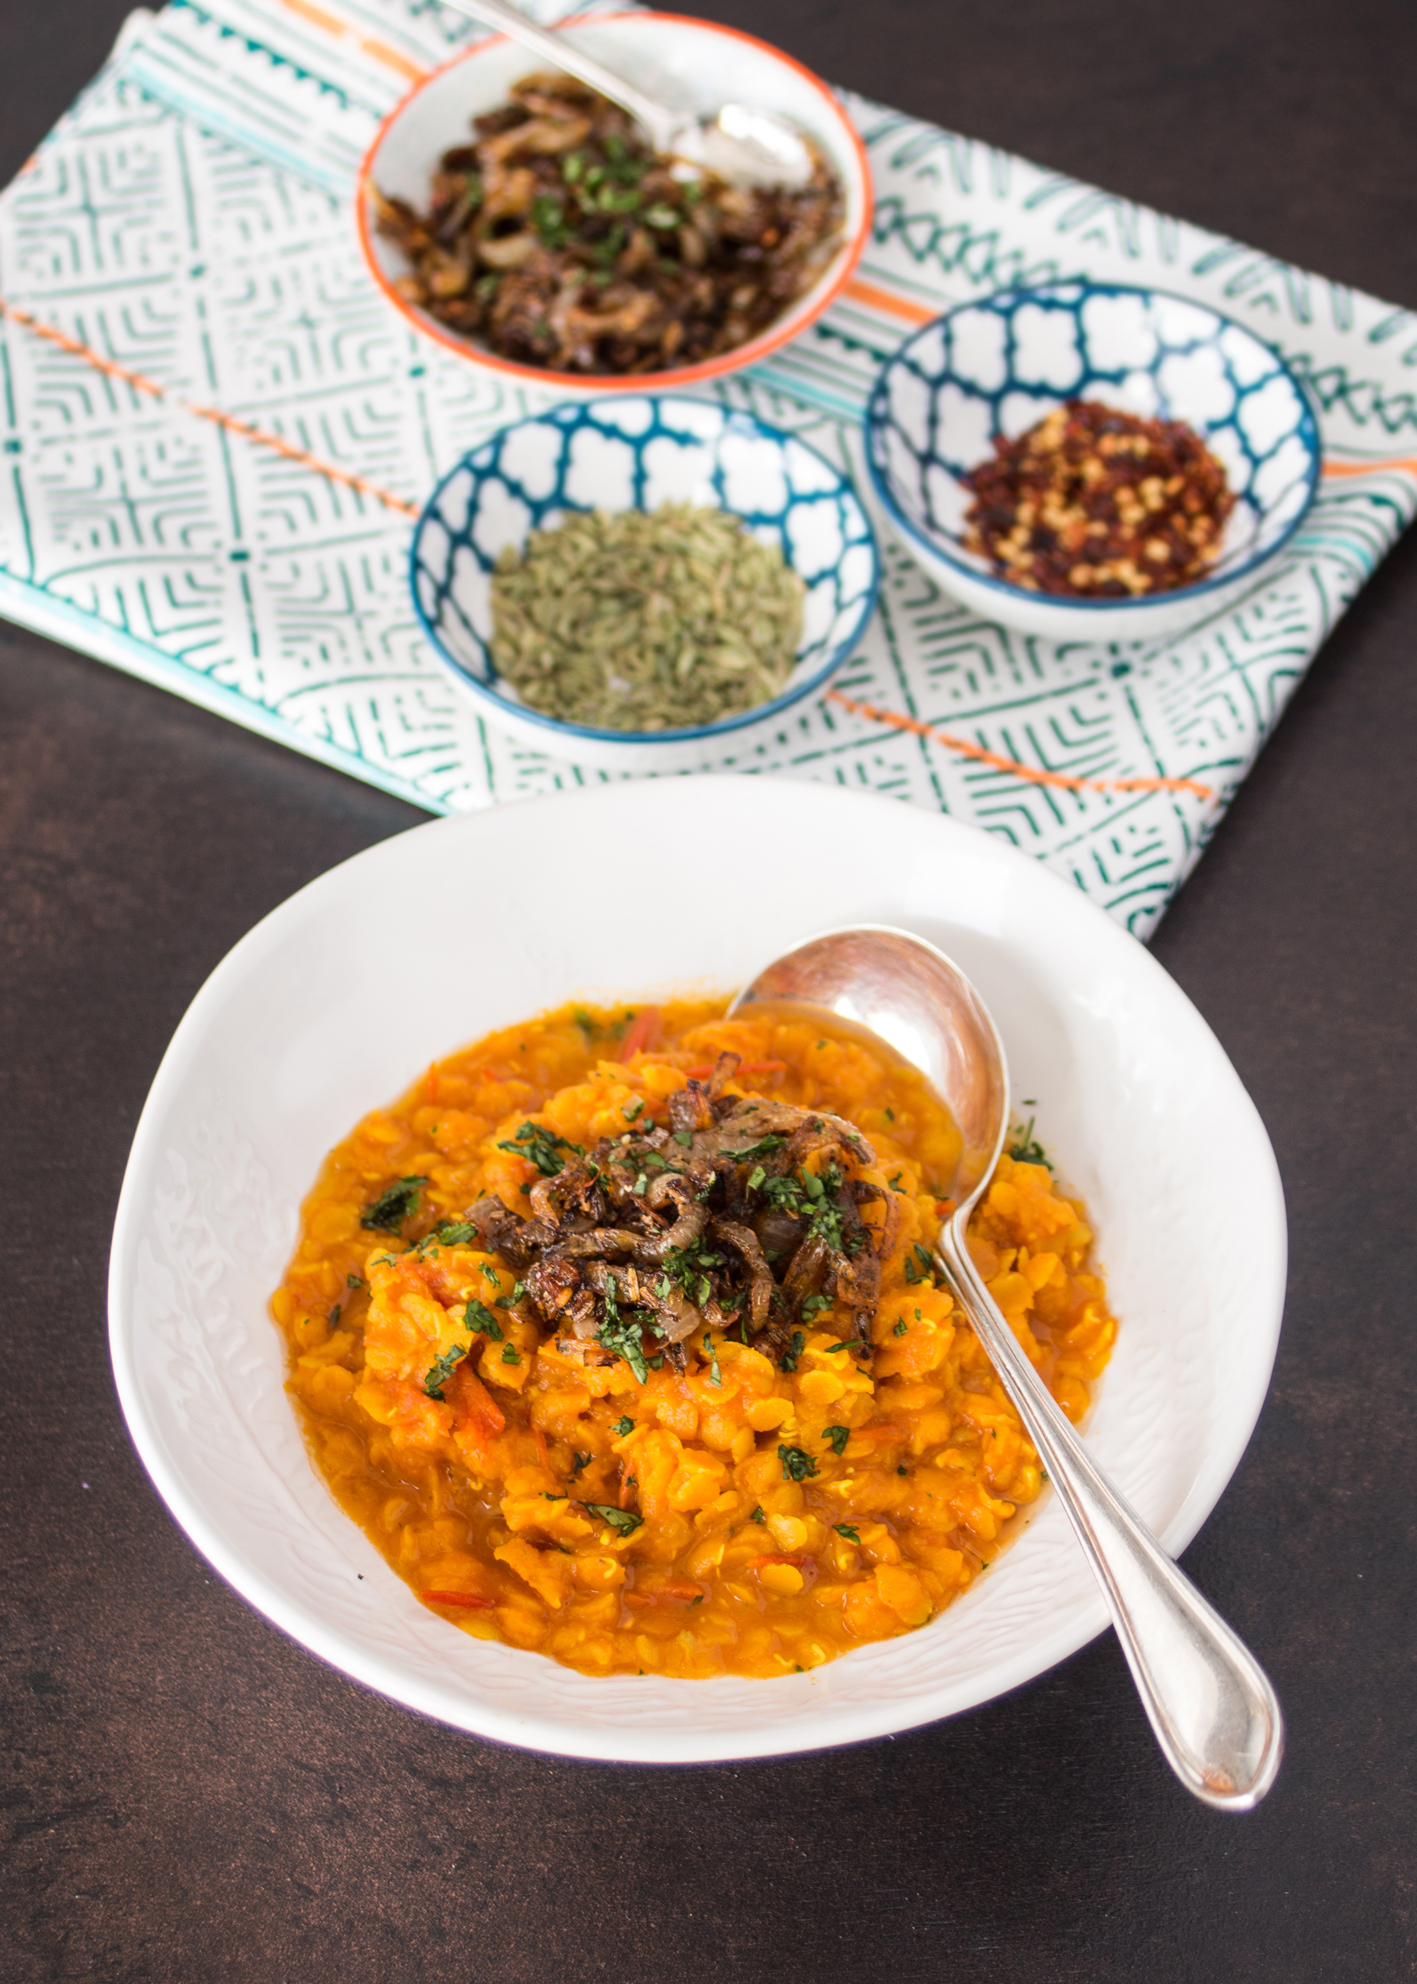 Isle of Wight Tomato dhal with shallot tadka - This simple red lentil dal recipe is comforting and easy to make. The fragrant cumin, coriander seeds and the sweetness of cinnamon will make beautiful aromas that fill the air.